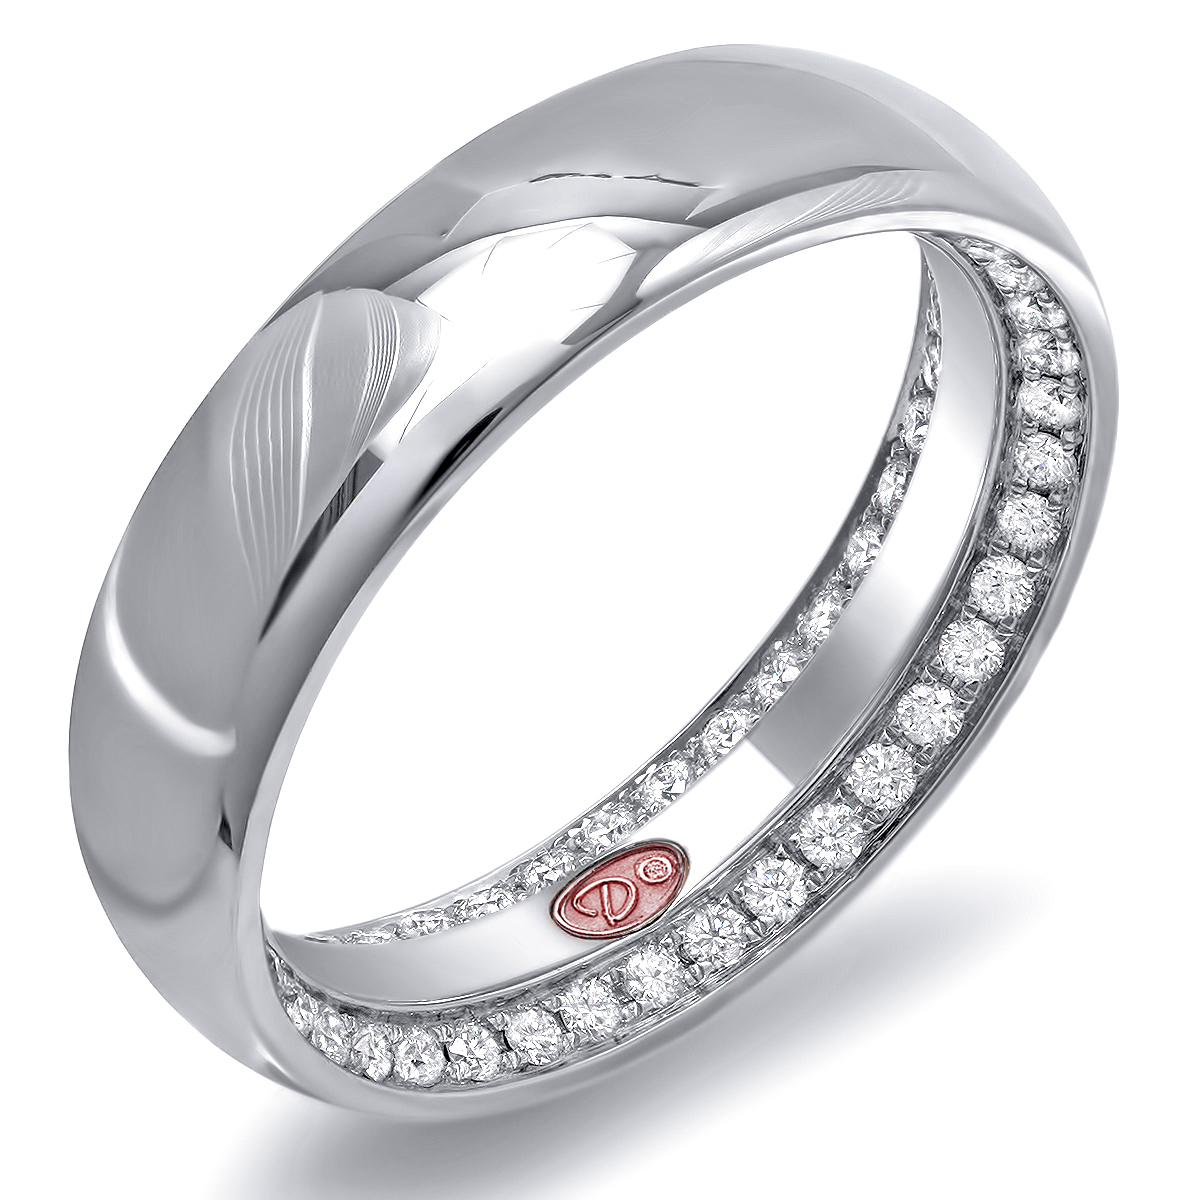 ideas wedding jewellery ring picture andino keop designs design